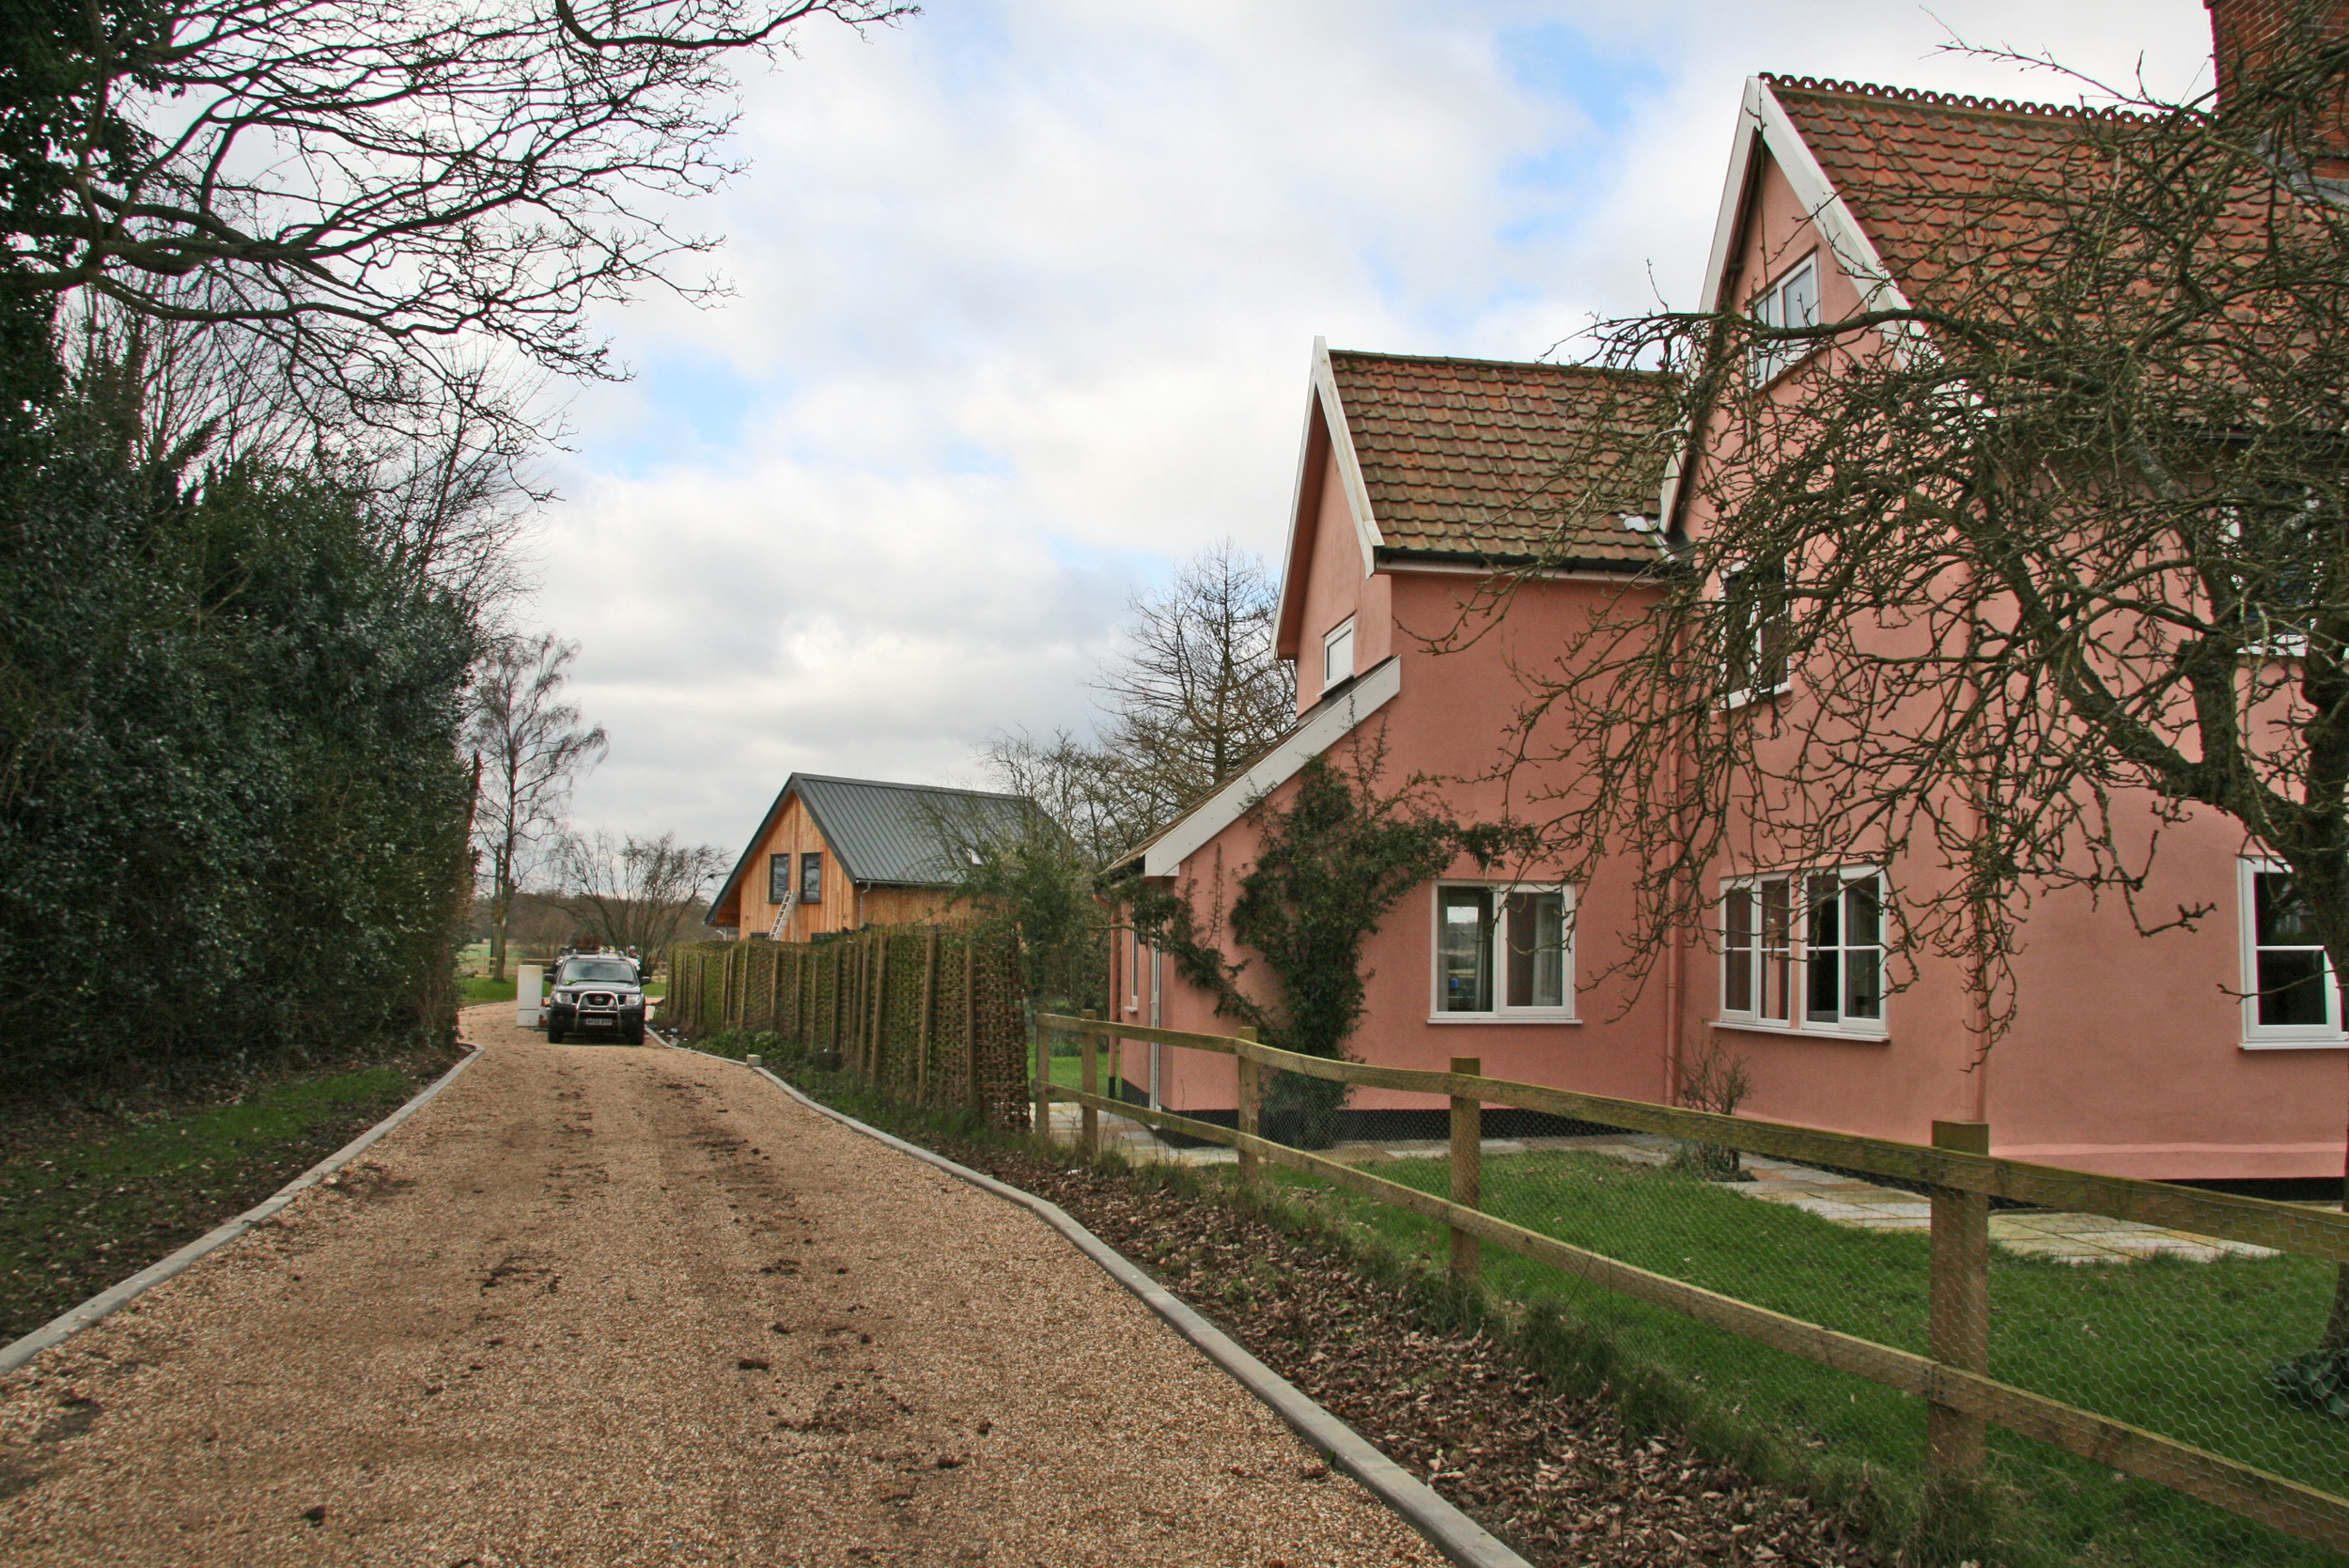 The project involved the segregation of a parcel of land within our clients land for the erection of a new dwelling for them to occupy. The host property, Church Farm House is of a traditional Suffolk Farmhouse aesthetic, which the new dwelling would have to respect in terms of its scale & aesthetic. Immediately South of the site is a grade I listed church building. The site is classified as 'Open Countryside'